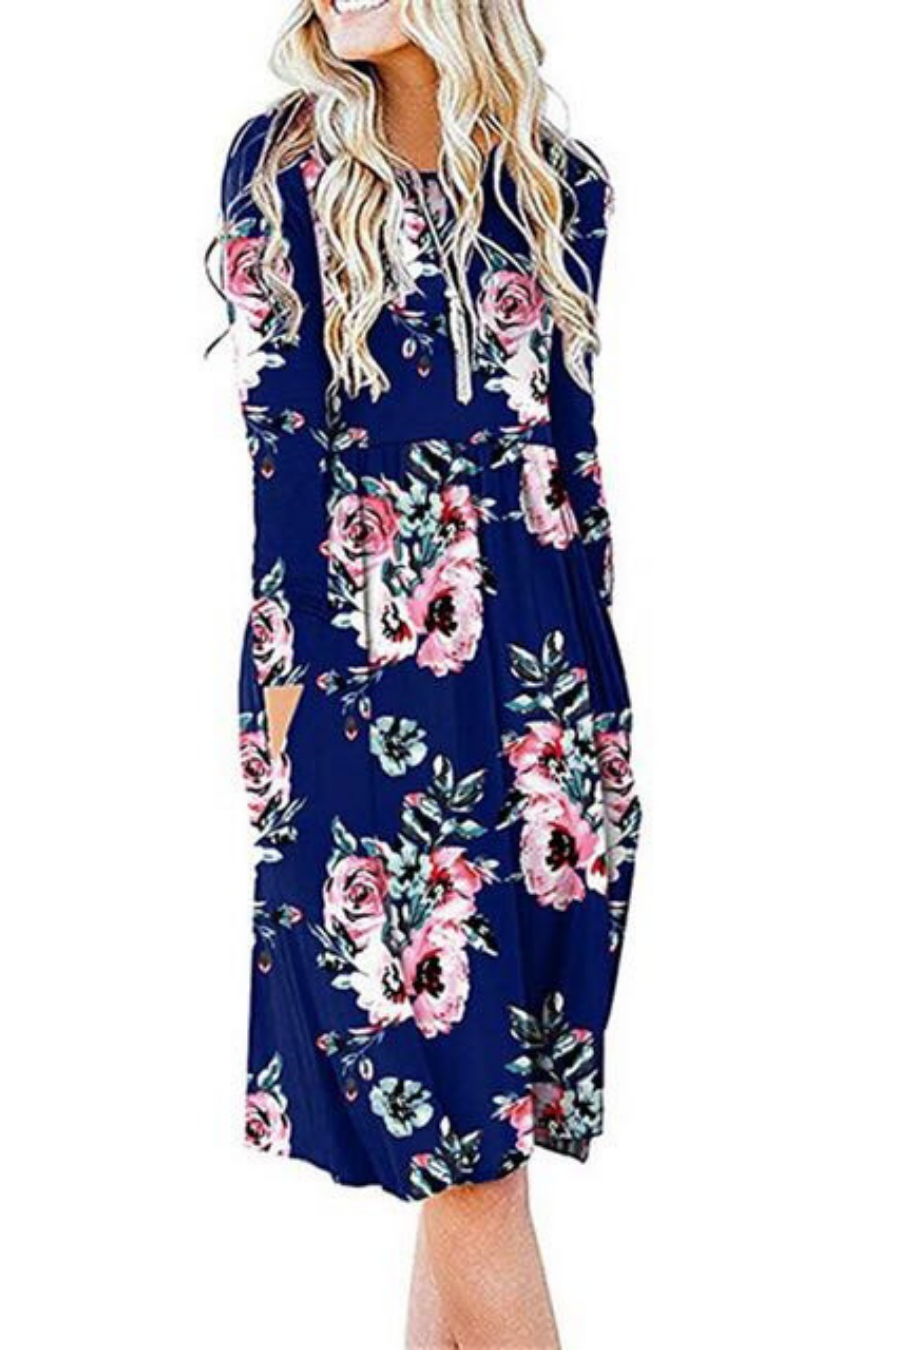 Floral Blue Empire Waist Dress